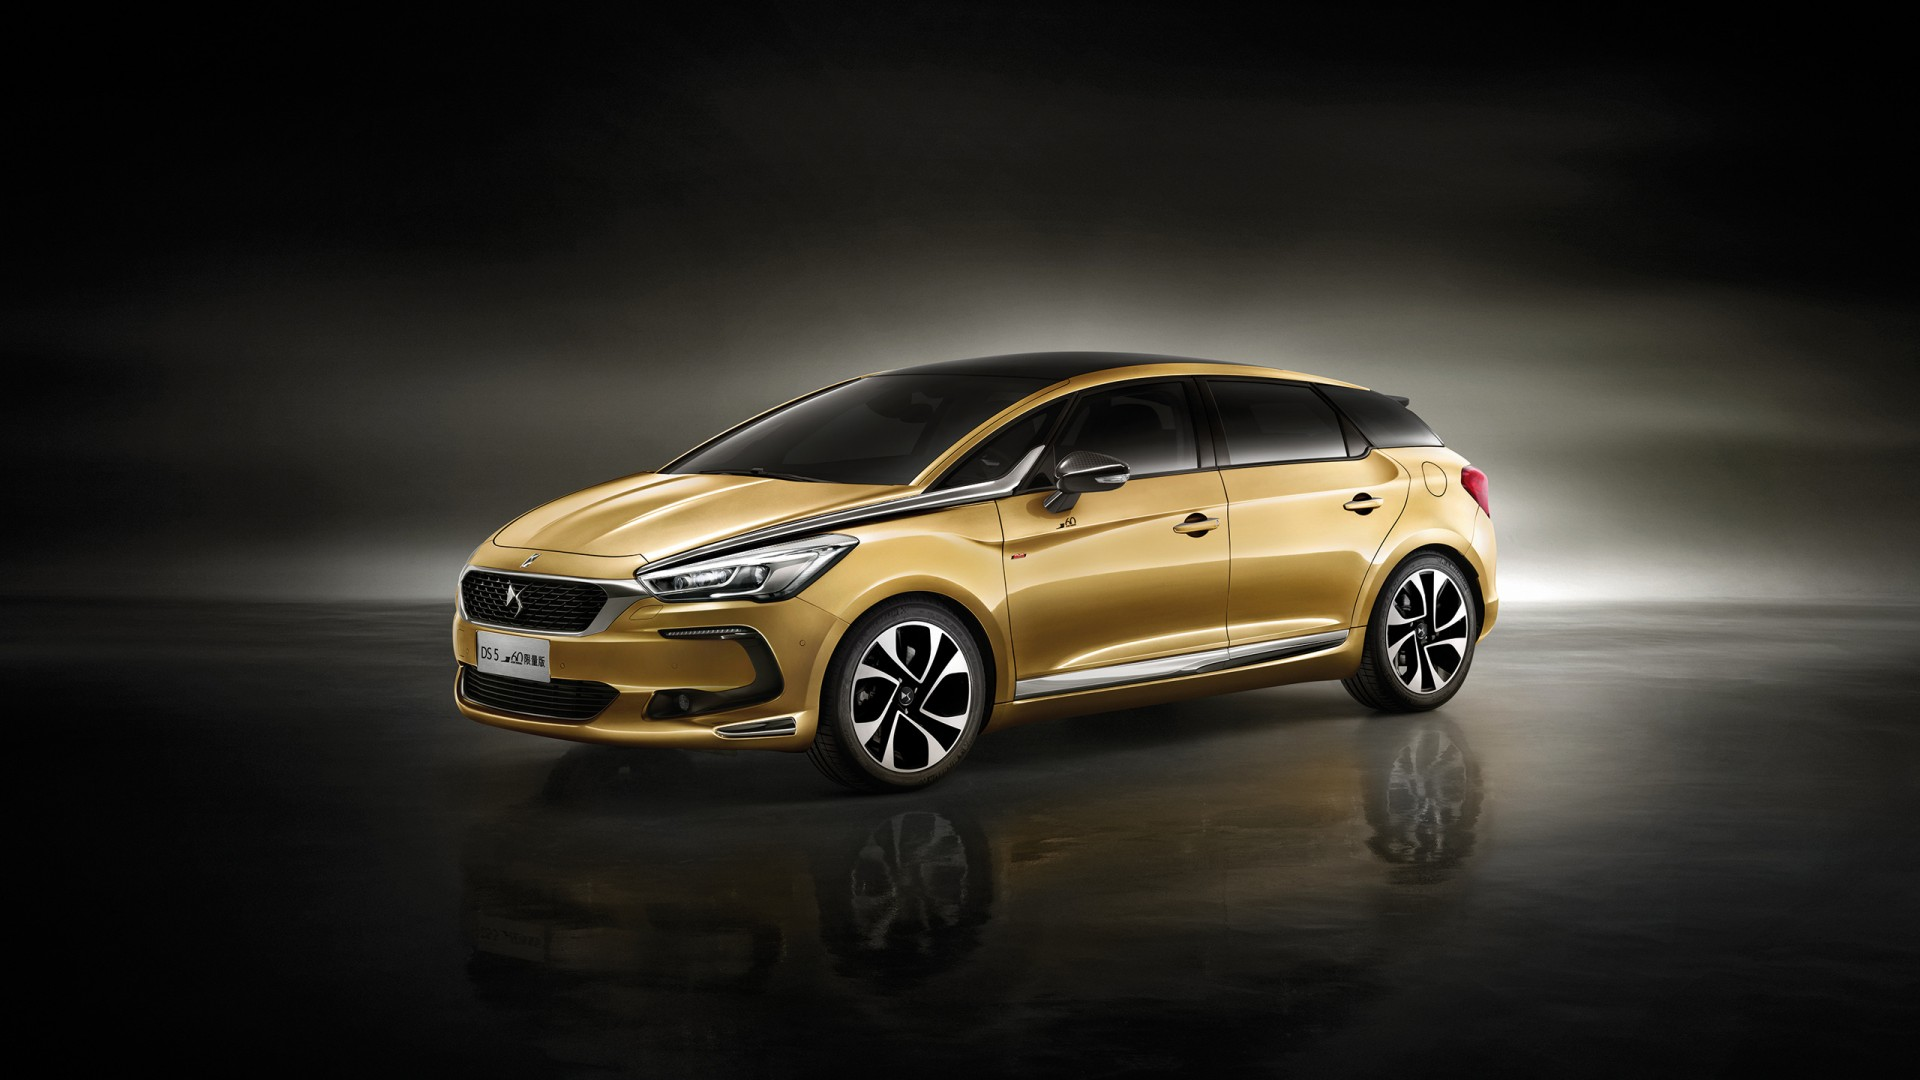 2015 Citroen Ds 5 Wallpaper Hd Car Wallpapers Id 5717